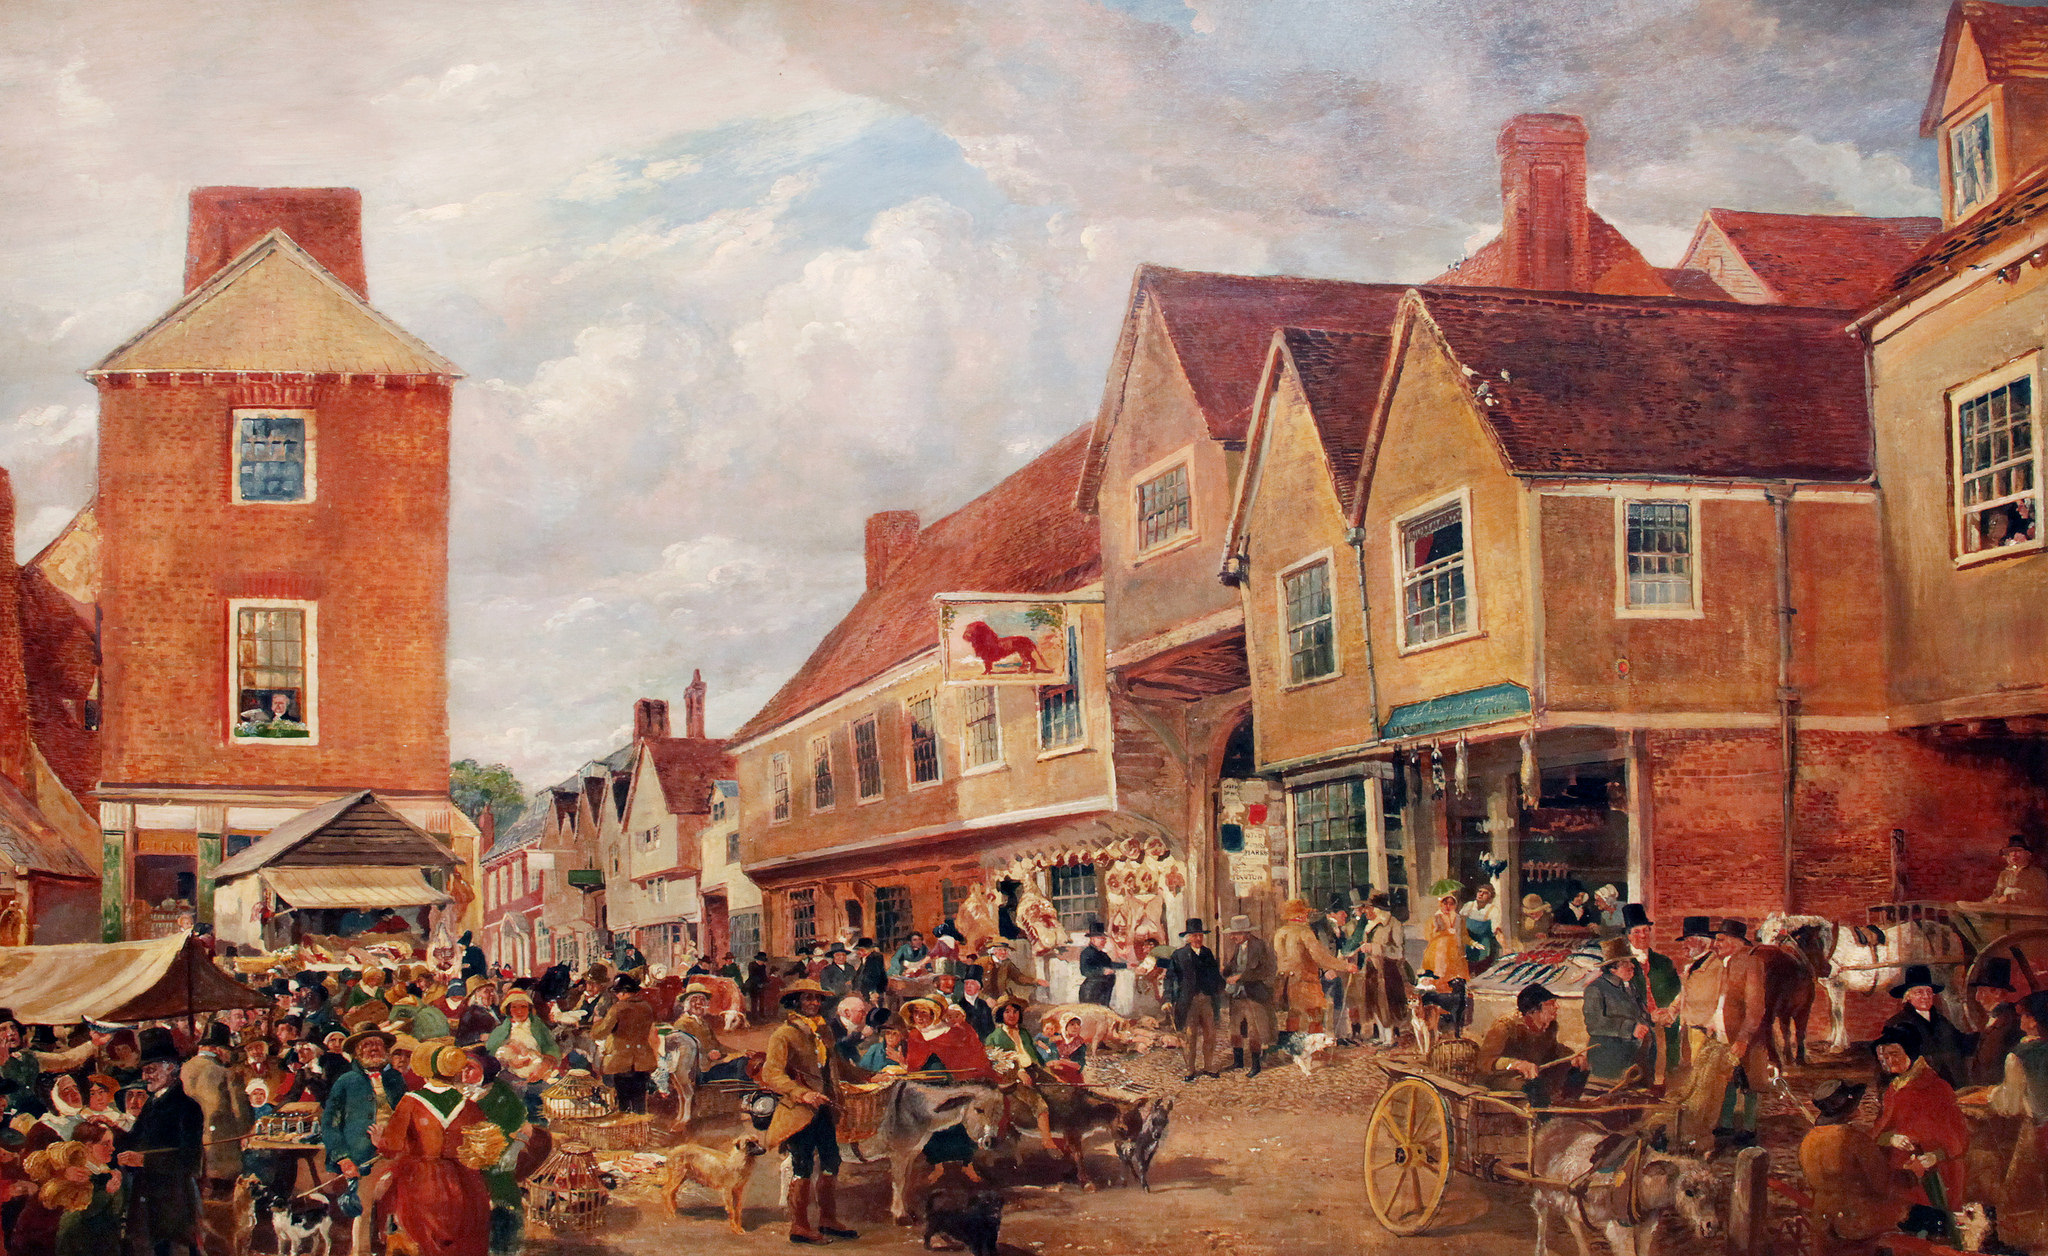 Hitchin Marketplace oil painting by Samuel Lucas, 1840